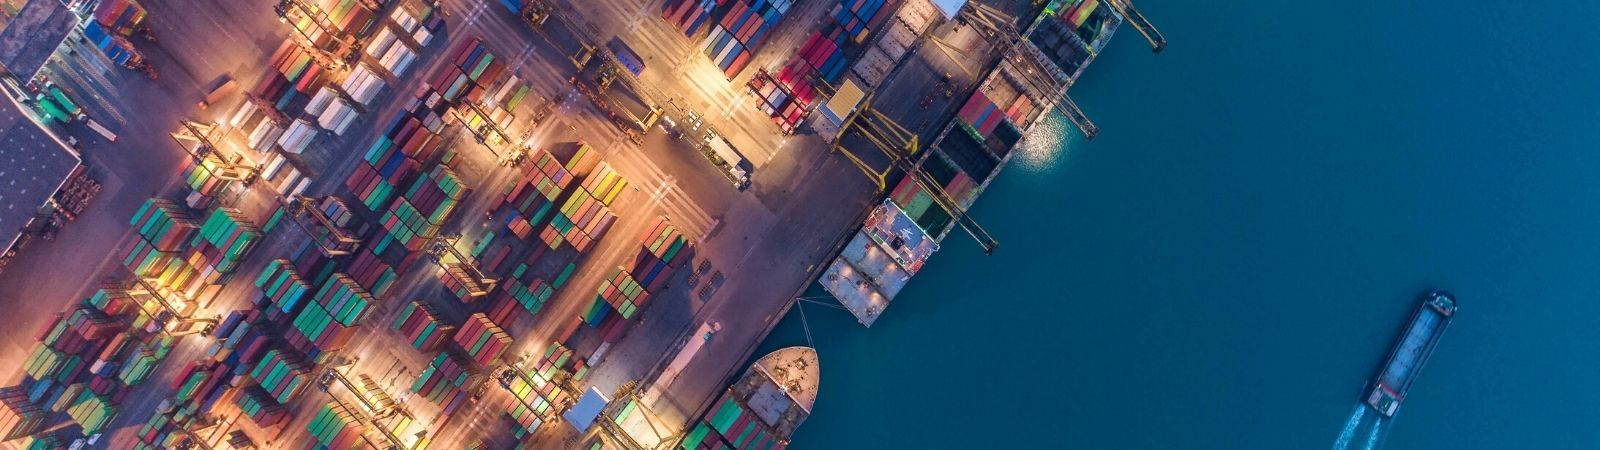 Ariel view of a shipping port with boats in dark blue water and colorful shipping containers on the port side, symbolizing international trade through the USMCA and NAFTA.